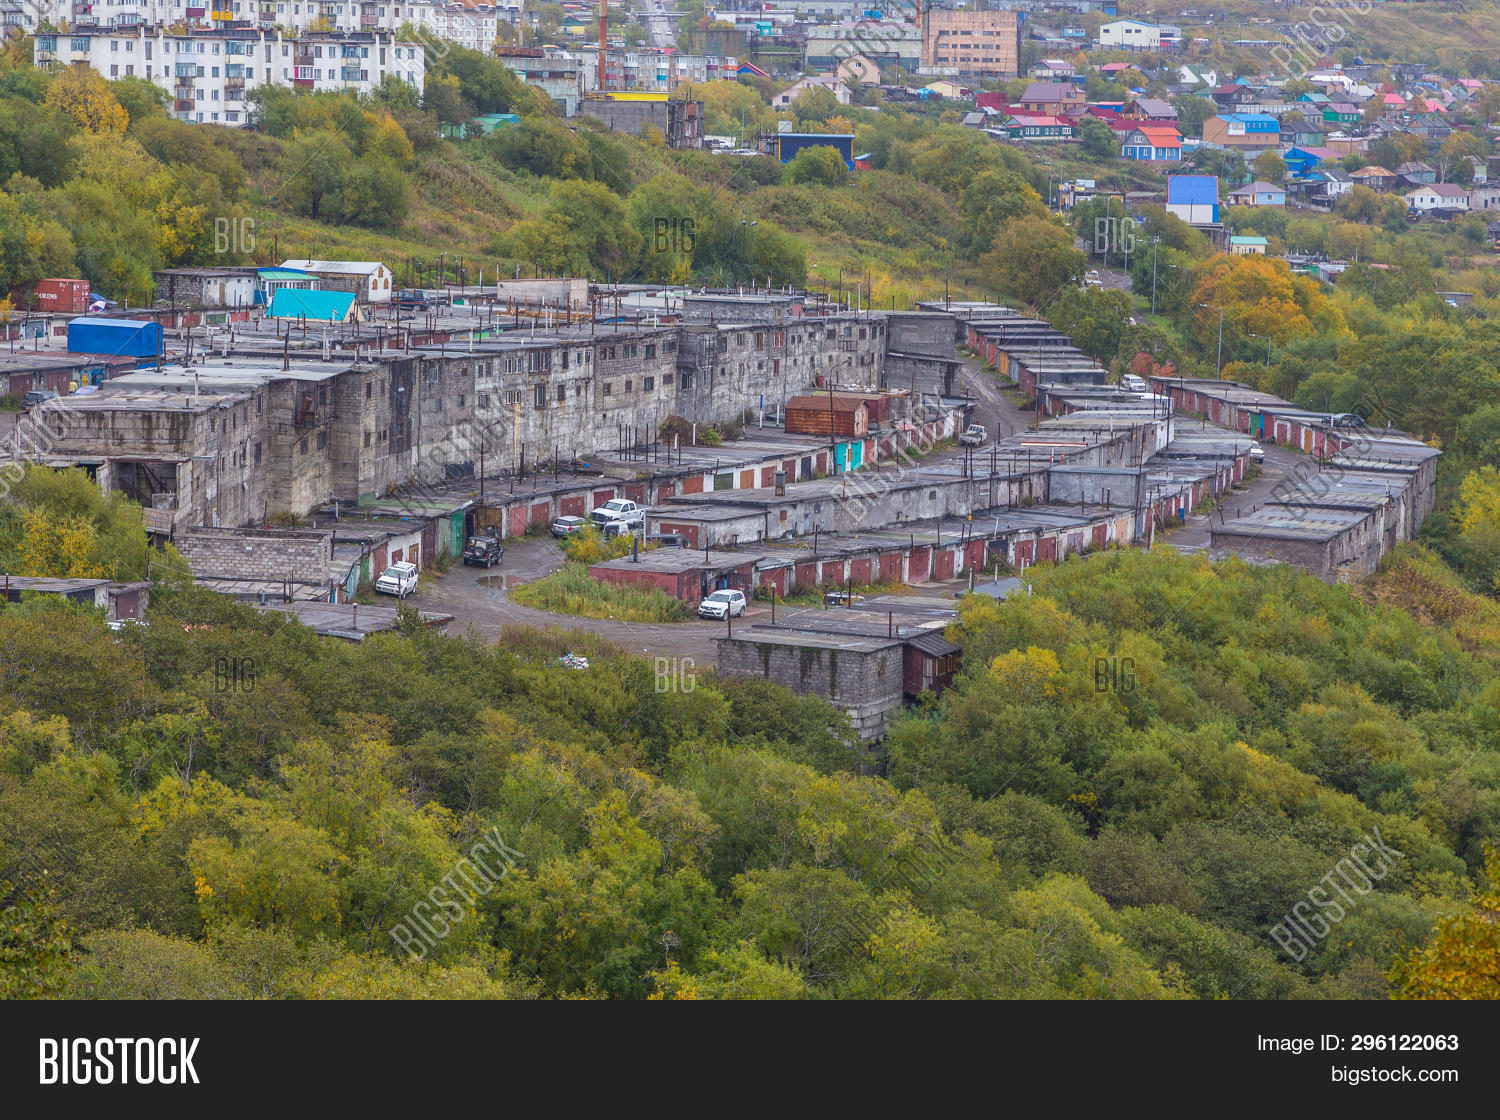 Petropavlovsk- Image & Photo (Free Trial) | Bigstock